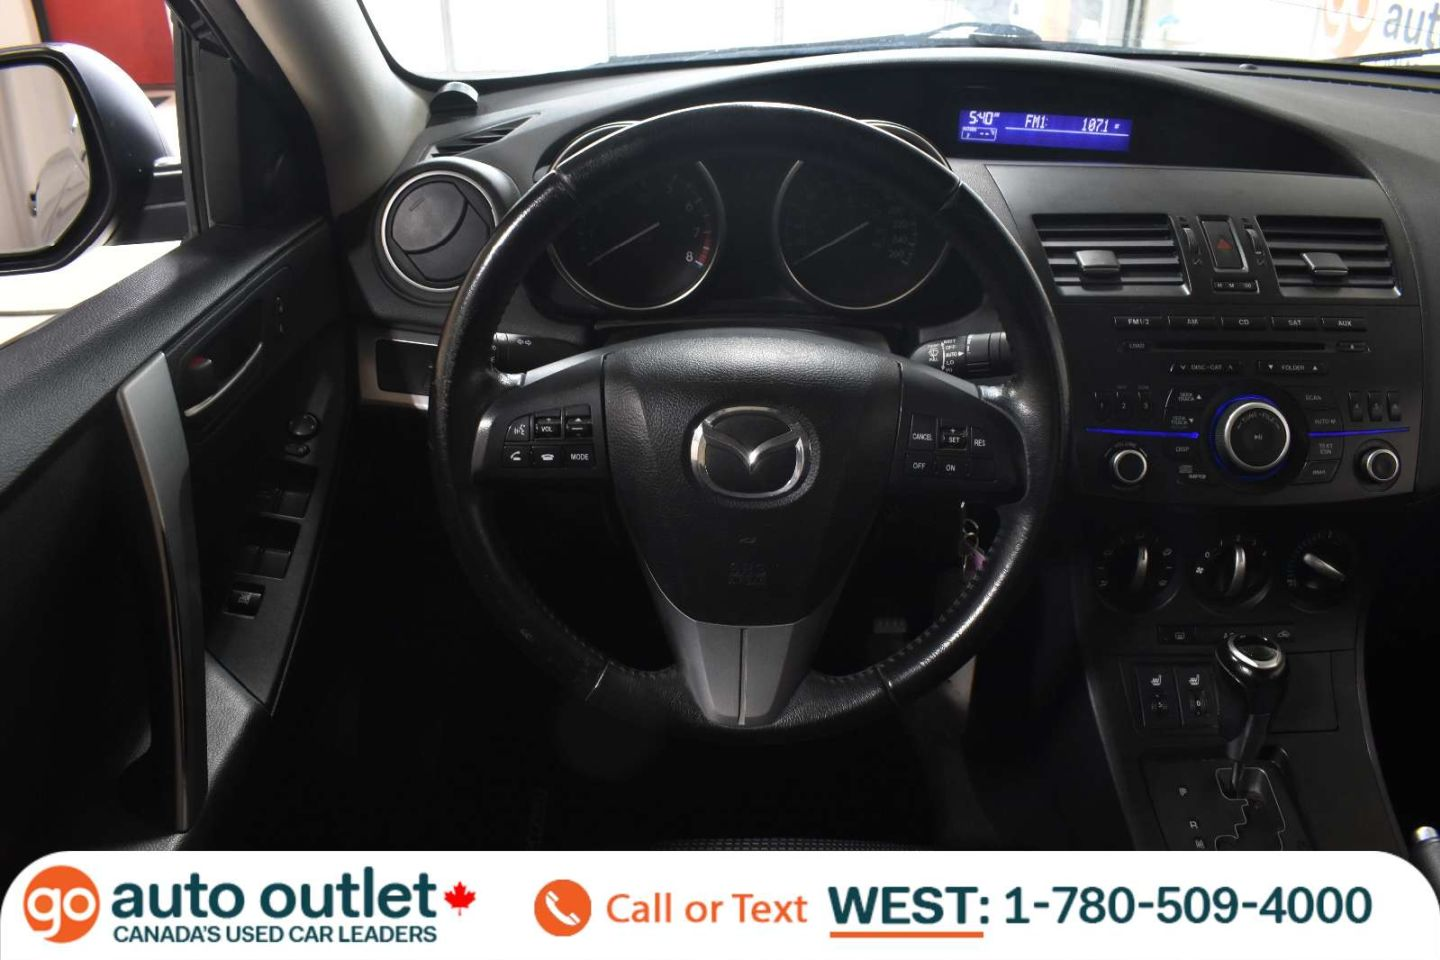 2012 Mazda Mazda3 GS-SKY for sale in Edmonton, Alberta